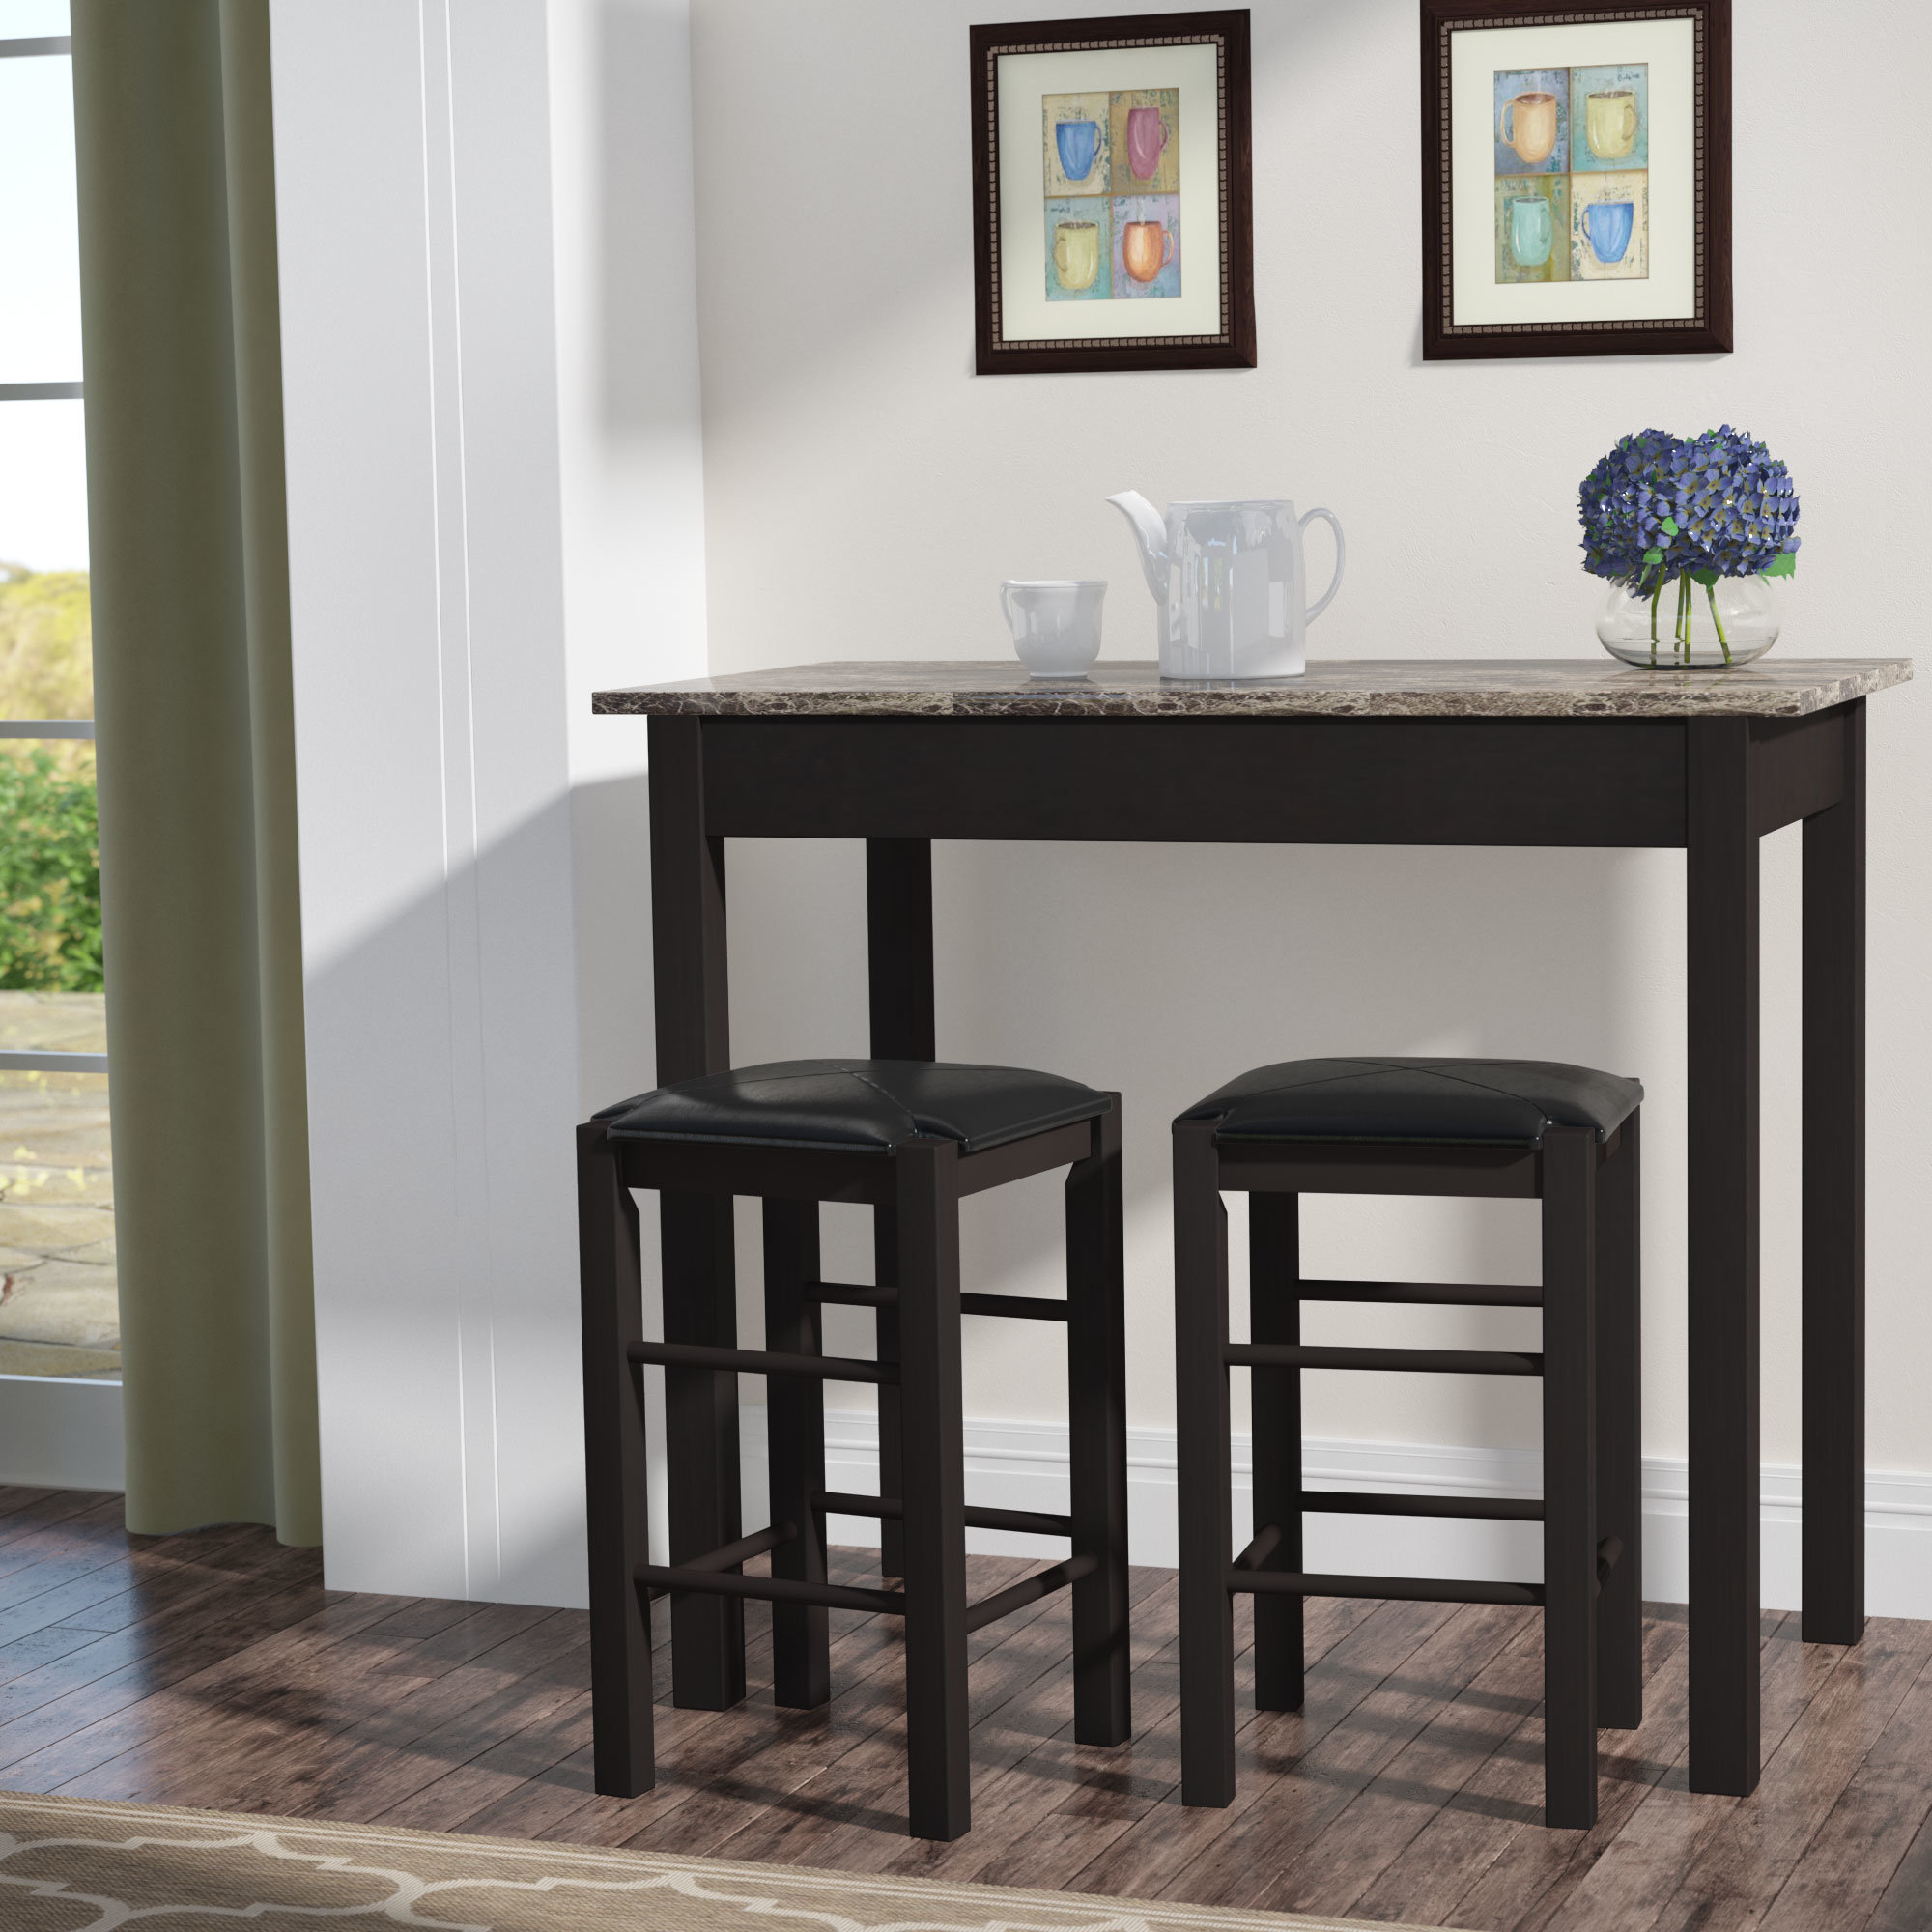 Favorite Winston Porter Sheetz 3 Piece Counter Height Dining Set & Reviews Throughout Mitzel 3 Piece Dining Sets (View 14 of 25)